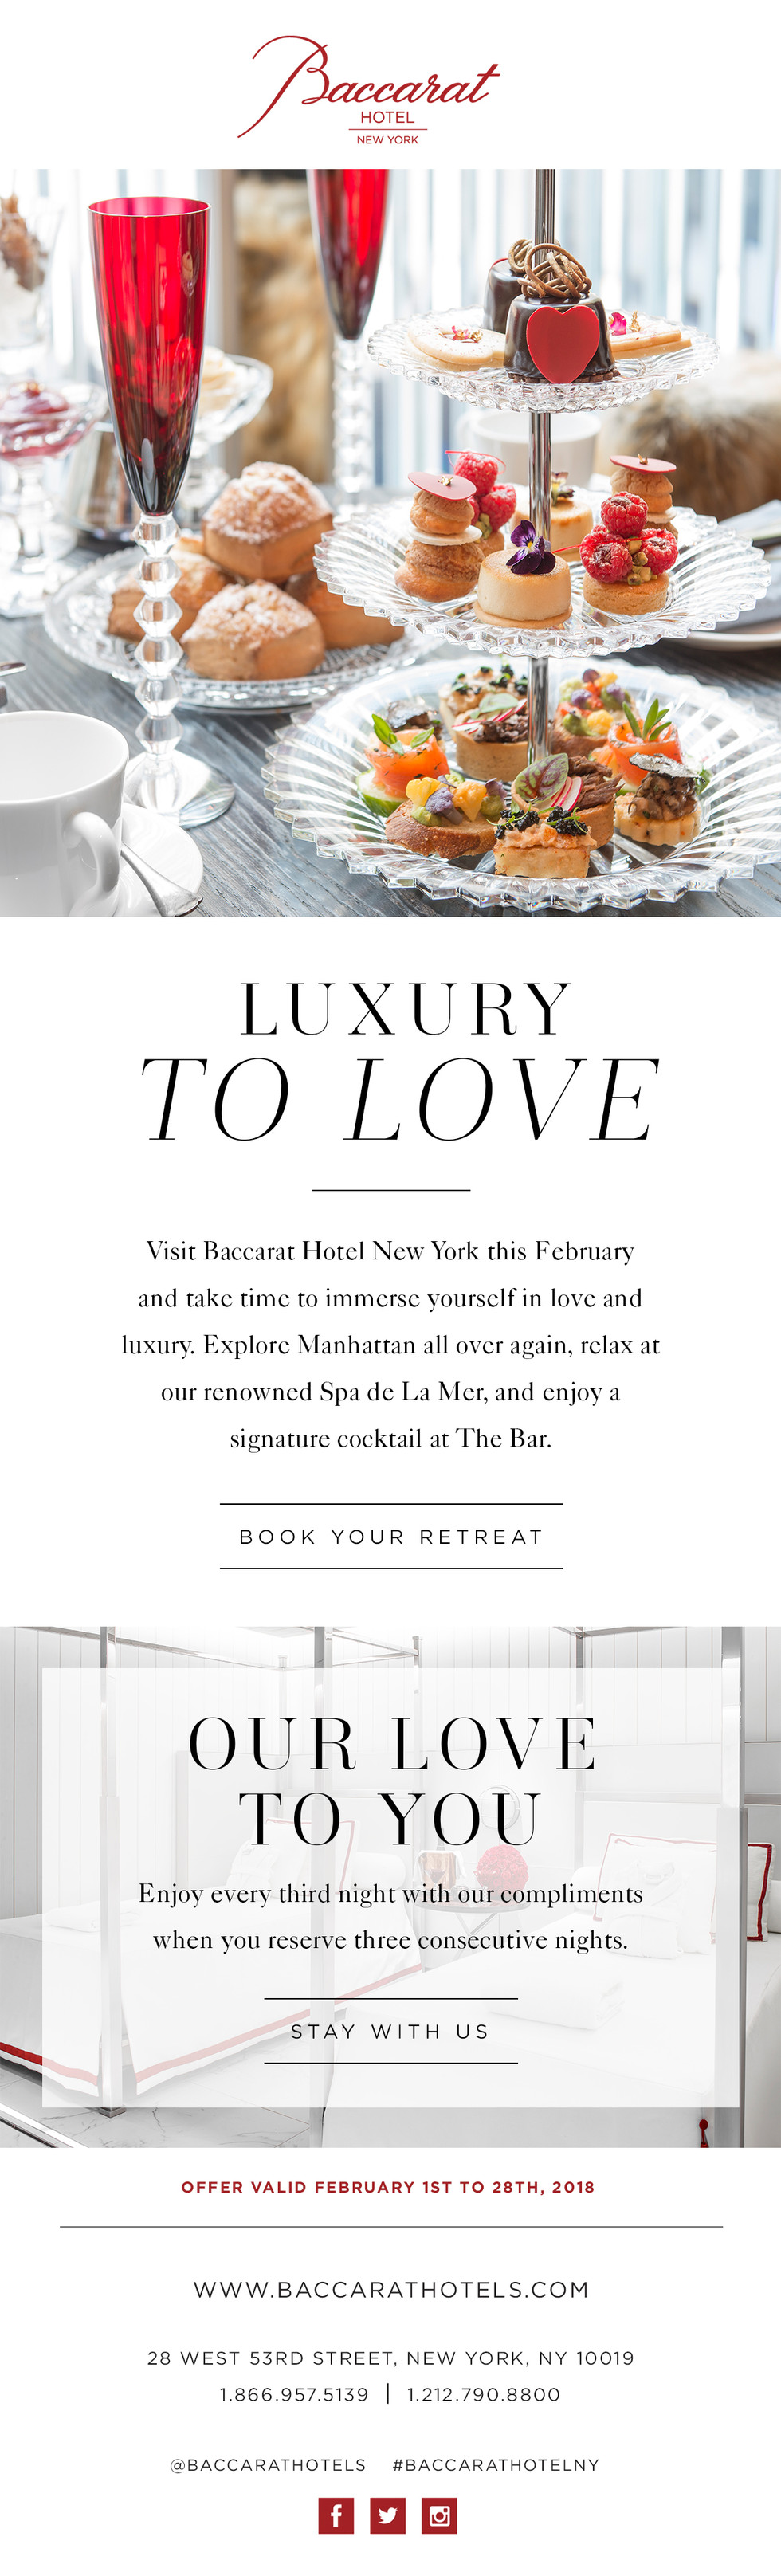 Baccarat_Valentines_Email.jpg